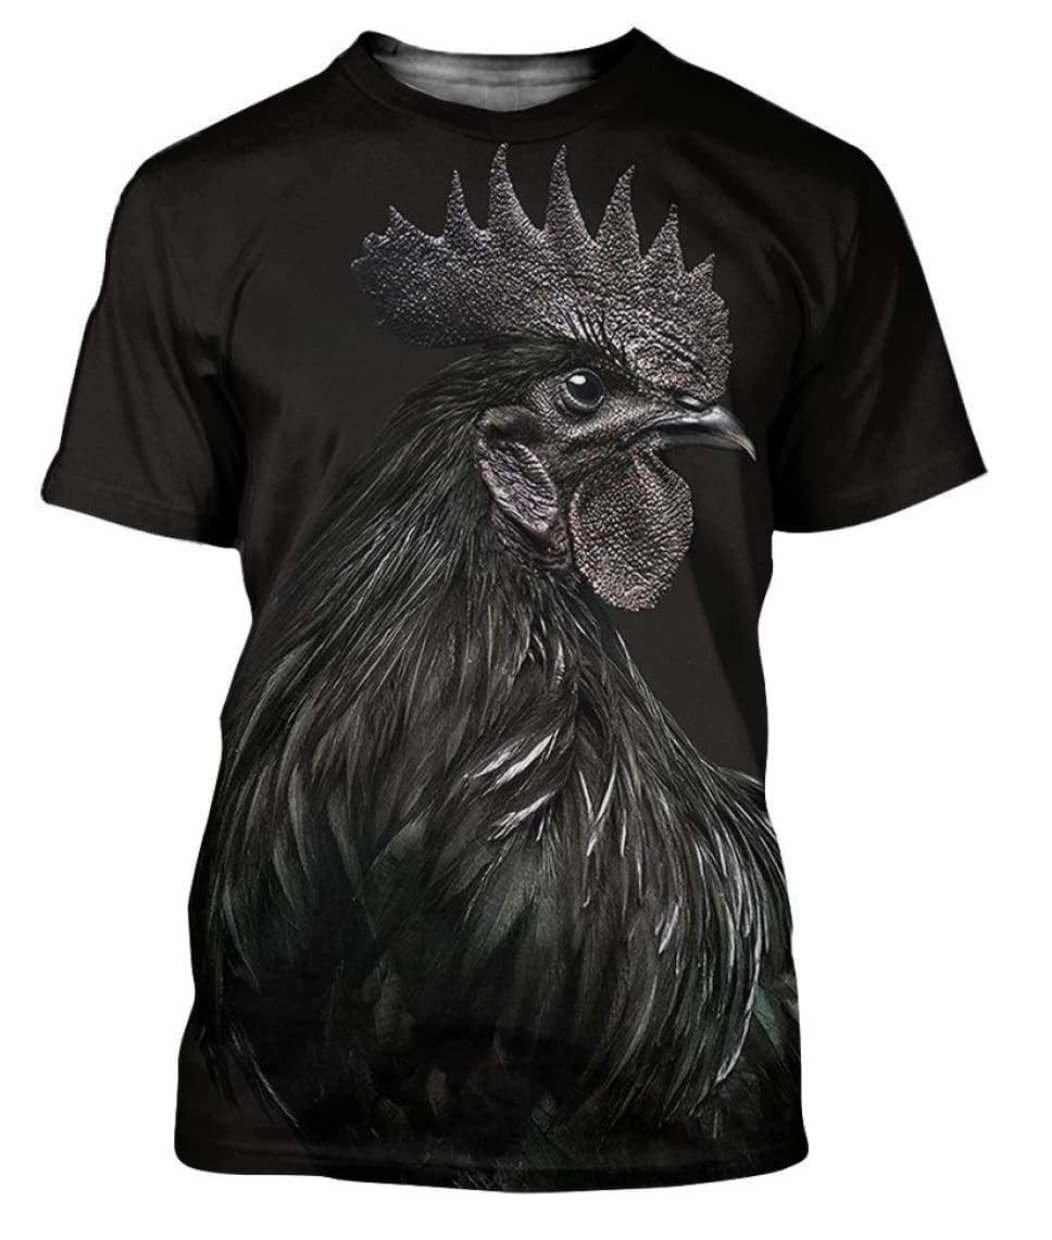 Dark Chicken 3D Printed T-Shirt